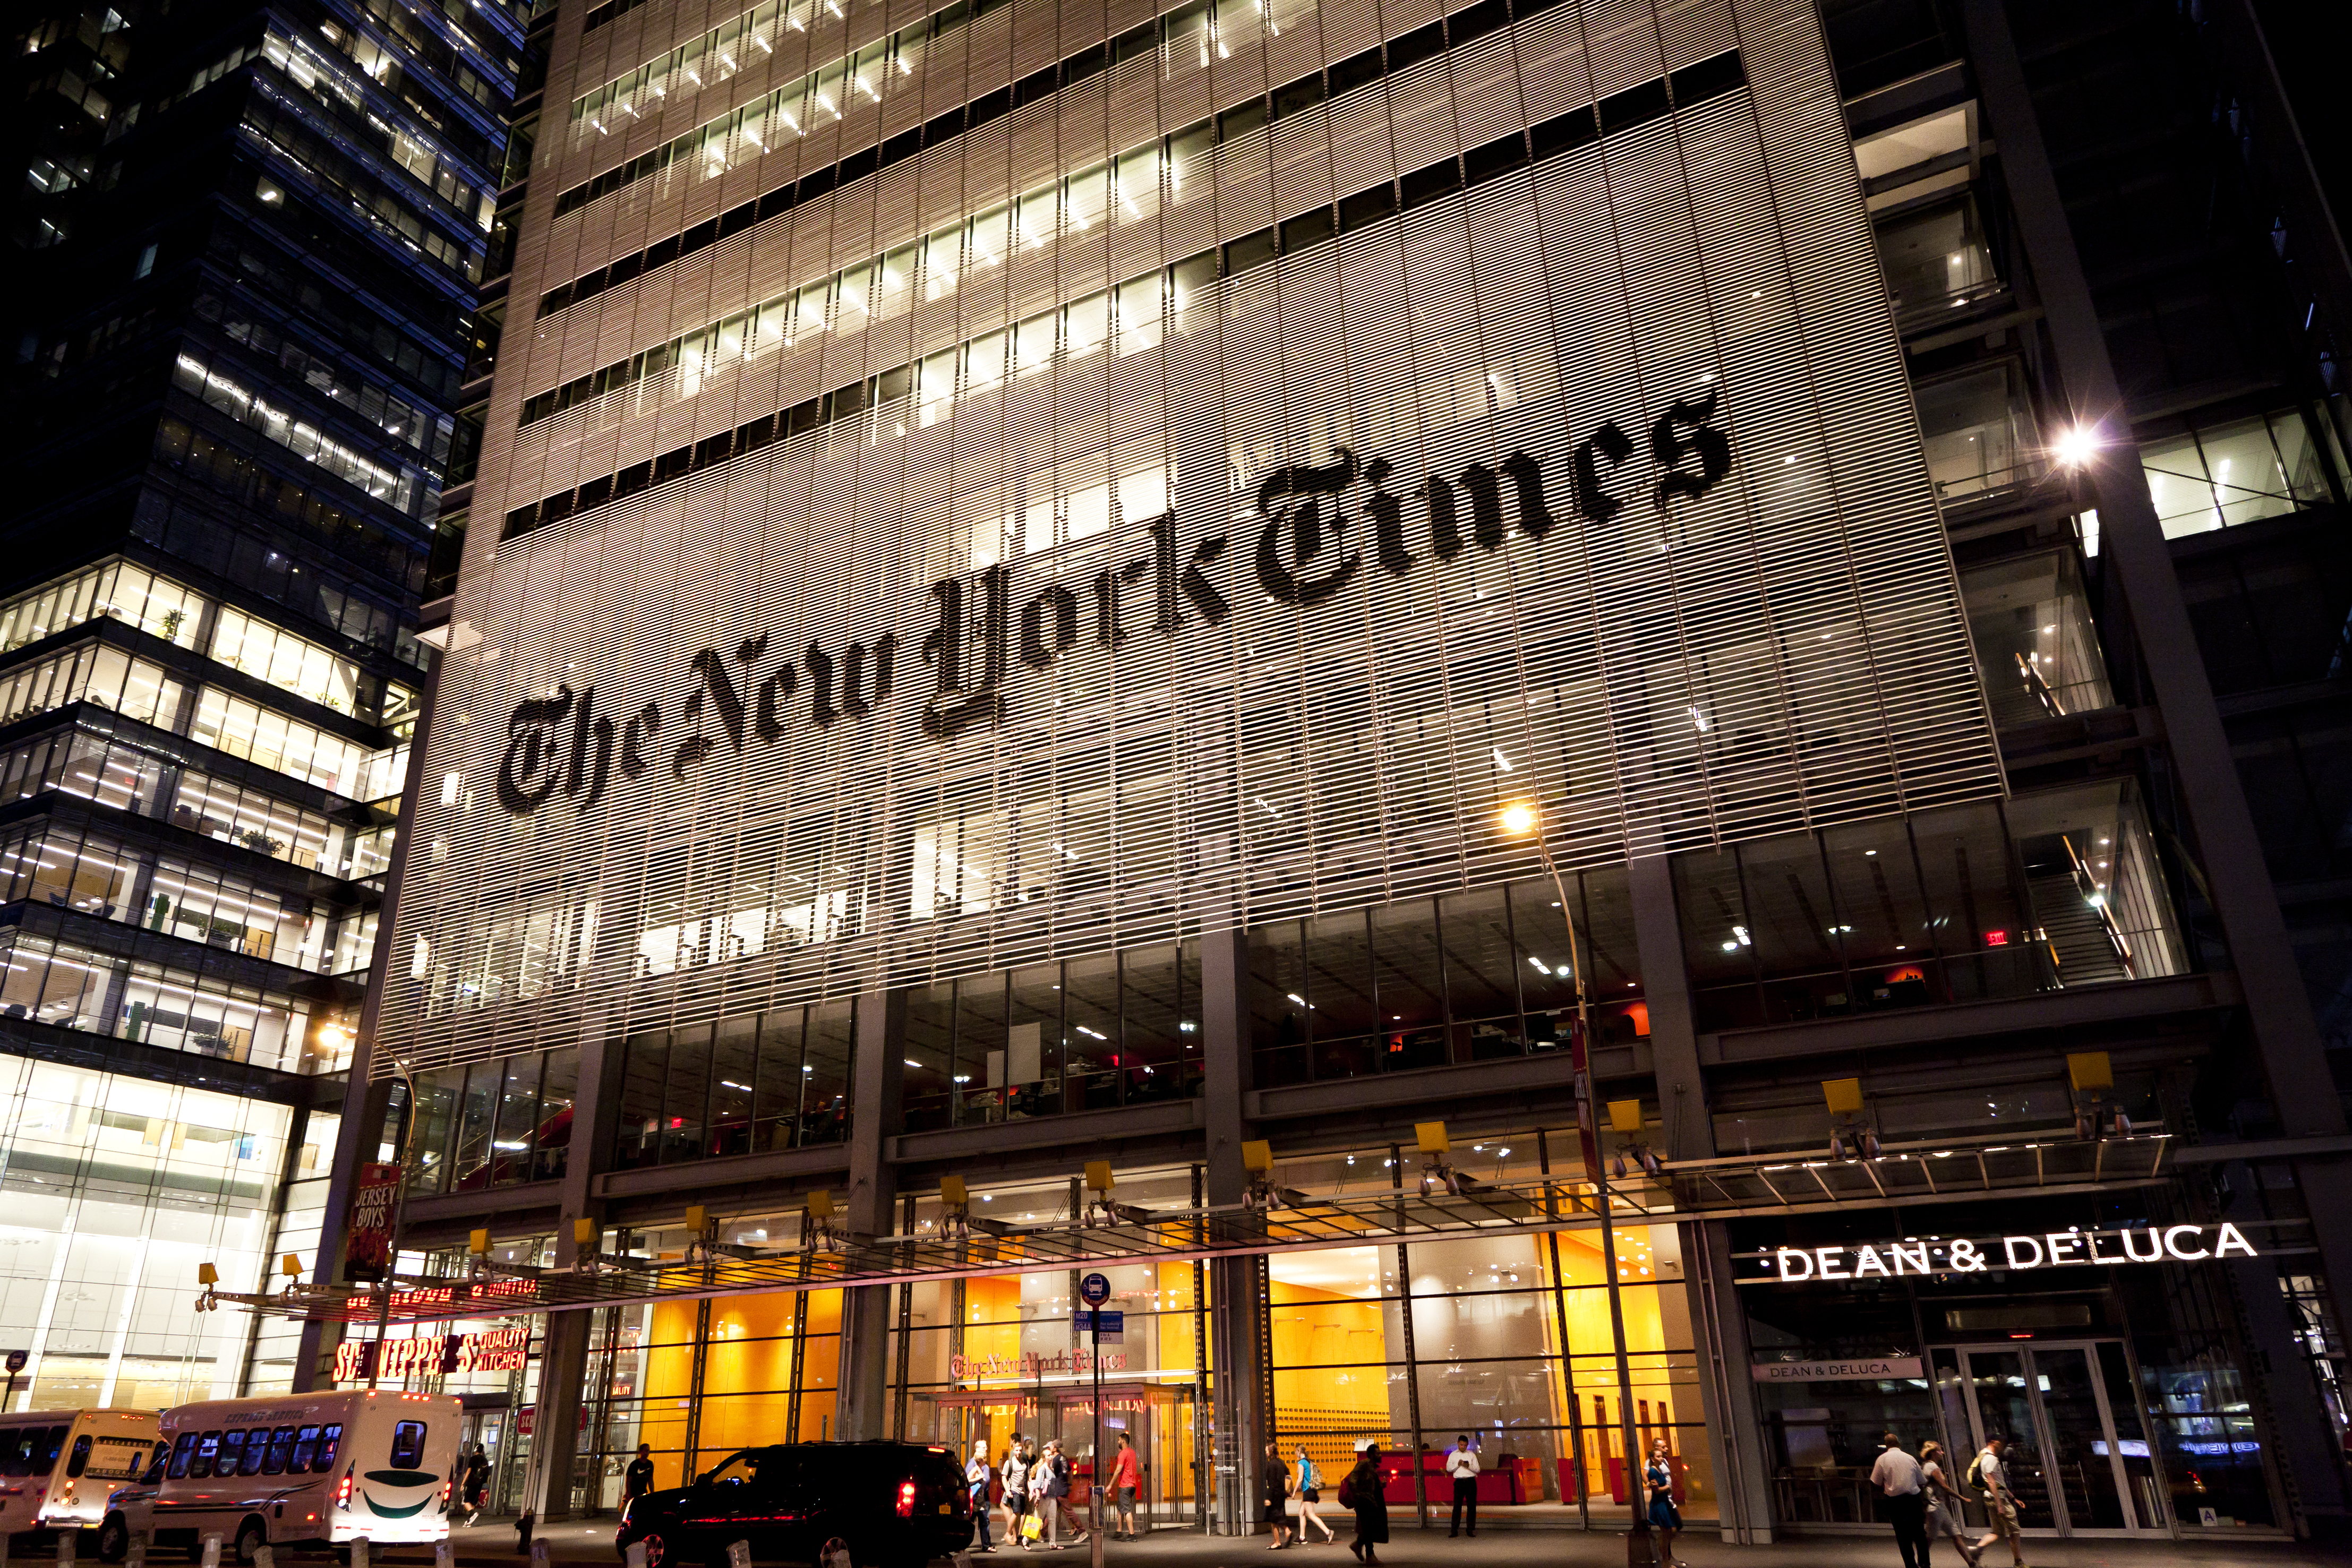 New York Times staffers revolt over publication of Tom Cotton op-ed